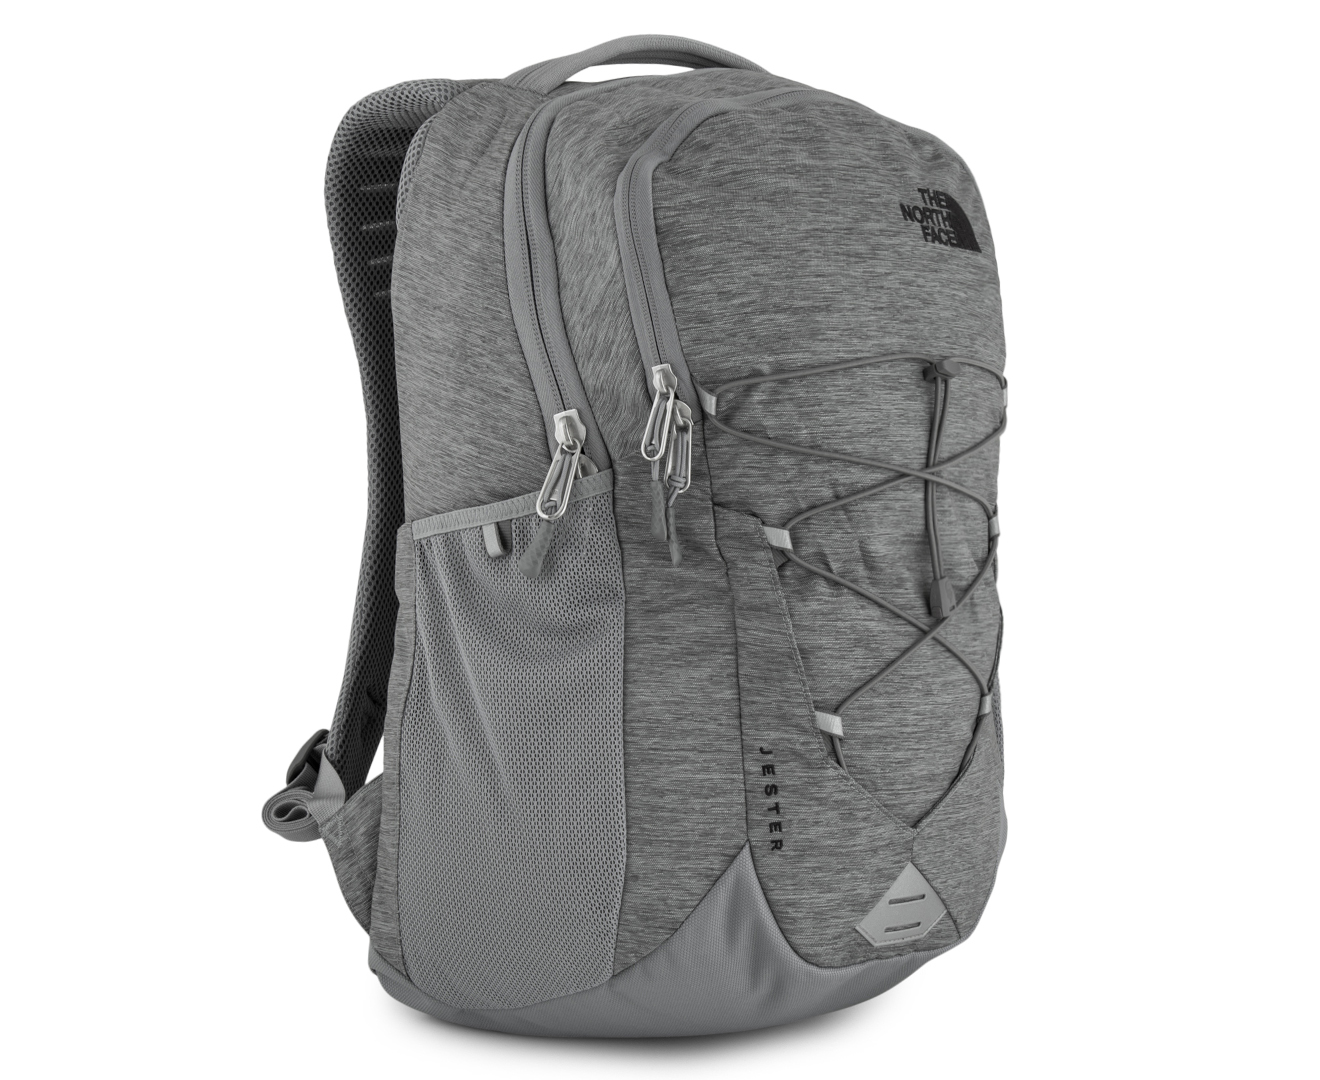 0c38295d The North Face Jester Backpack Mid Grey Dark Heather | Building ...